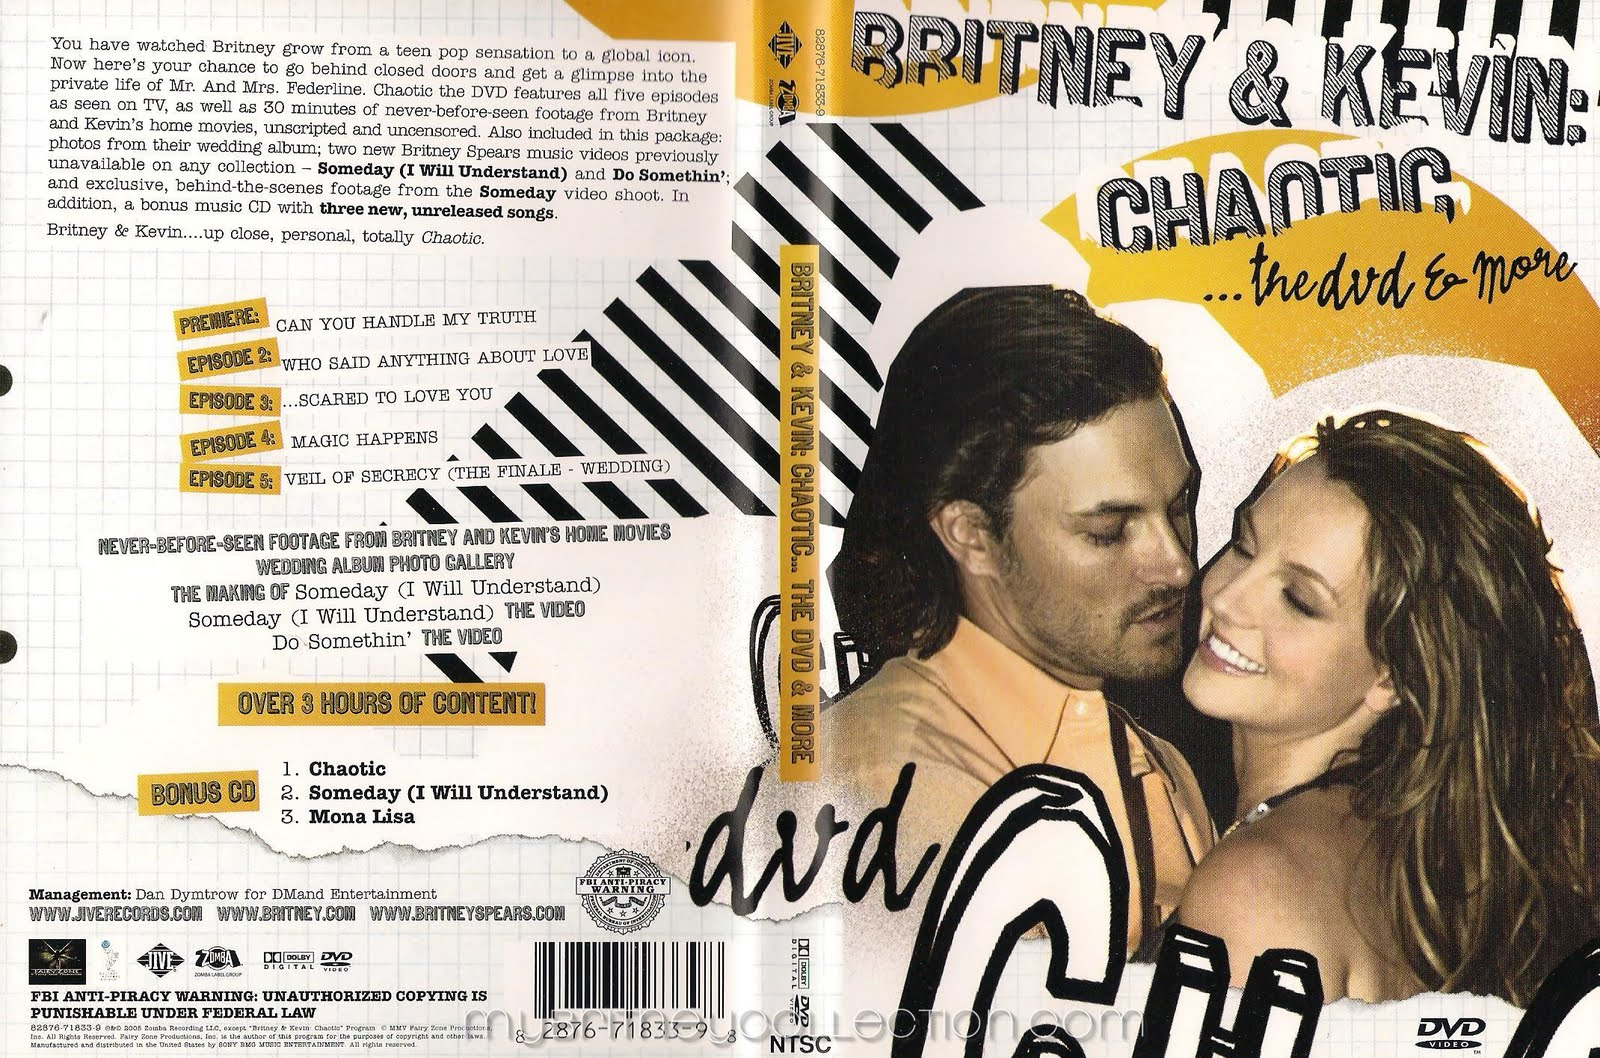 10 Of The Biggest Celebrity Regrets - Britney & Kevin - Chaotic